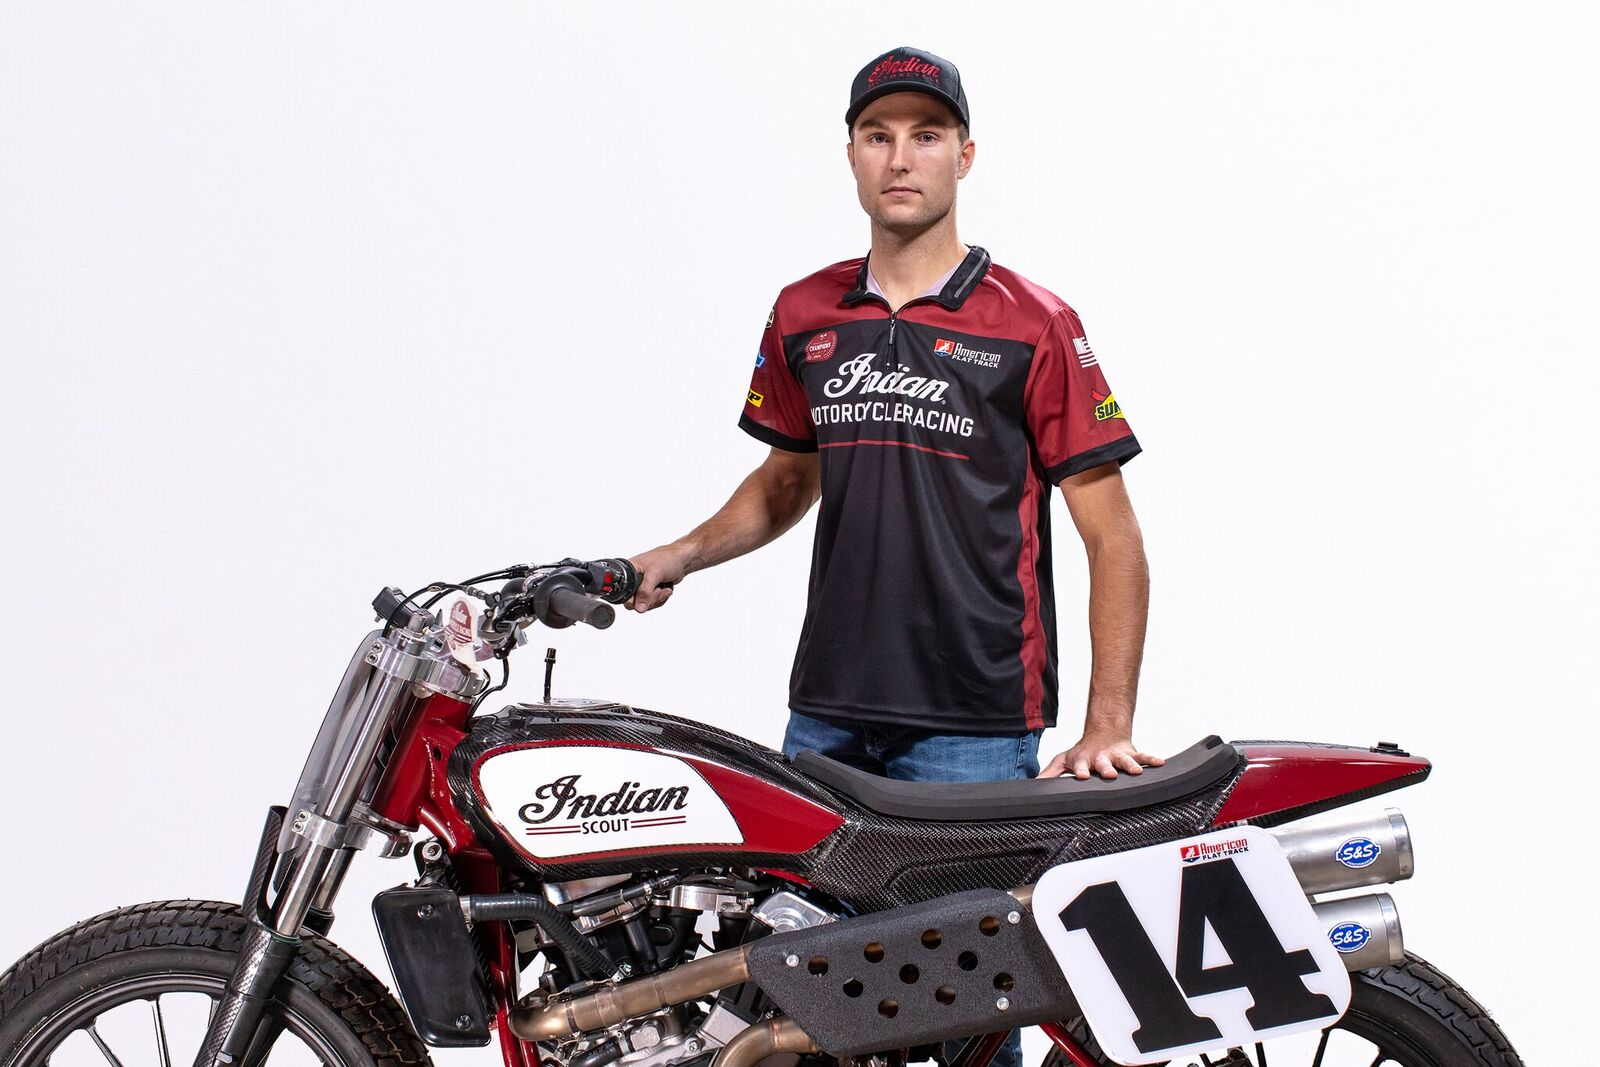 Indian Motorcycle Racing Wrecking Crew - Briar Bauman